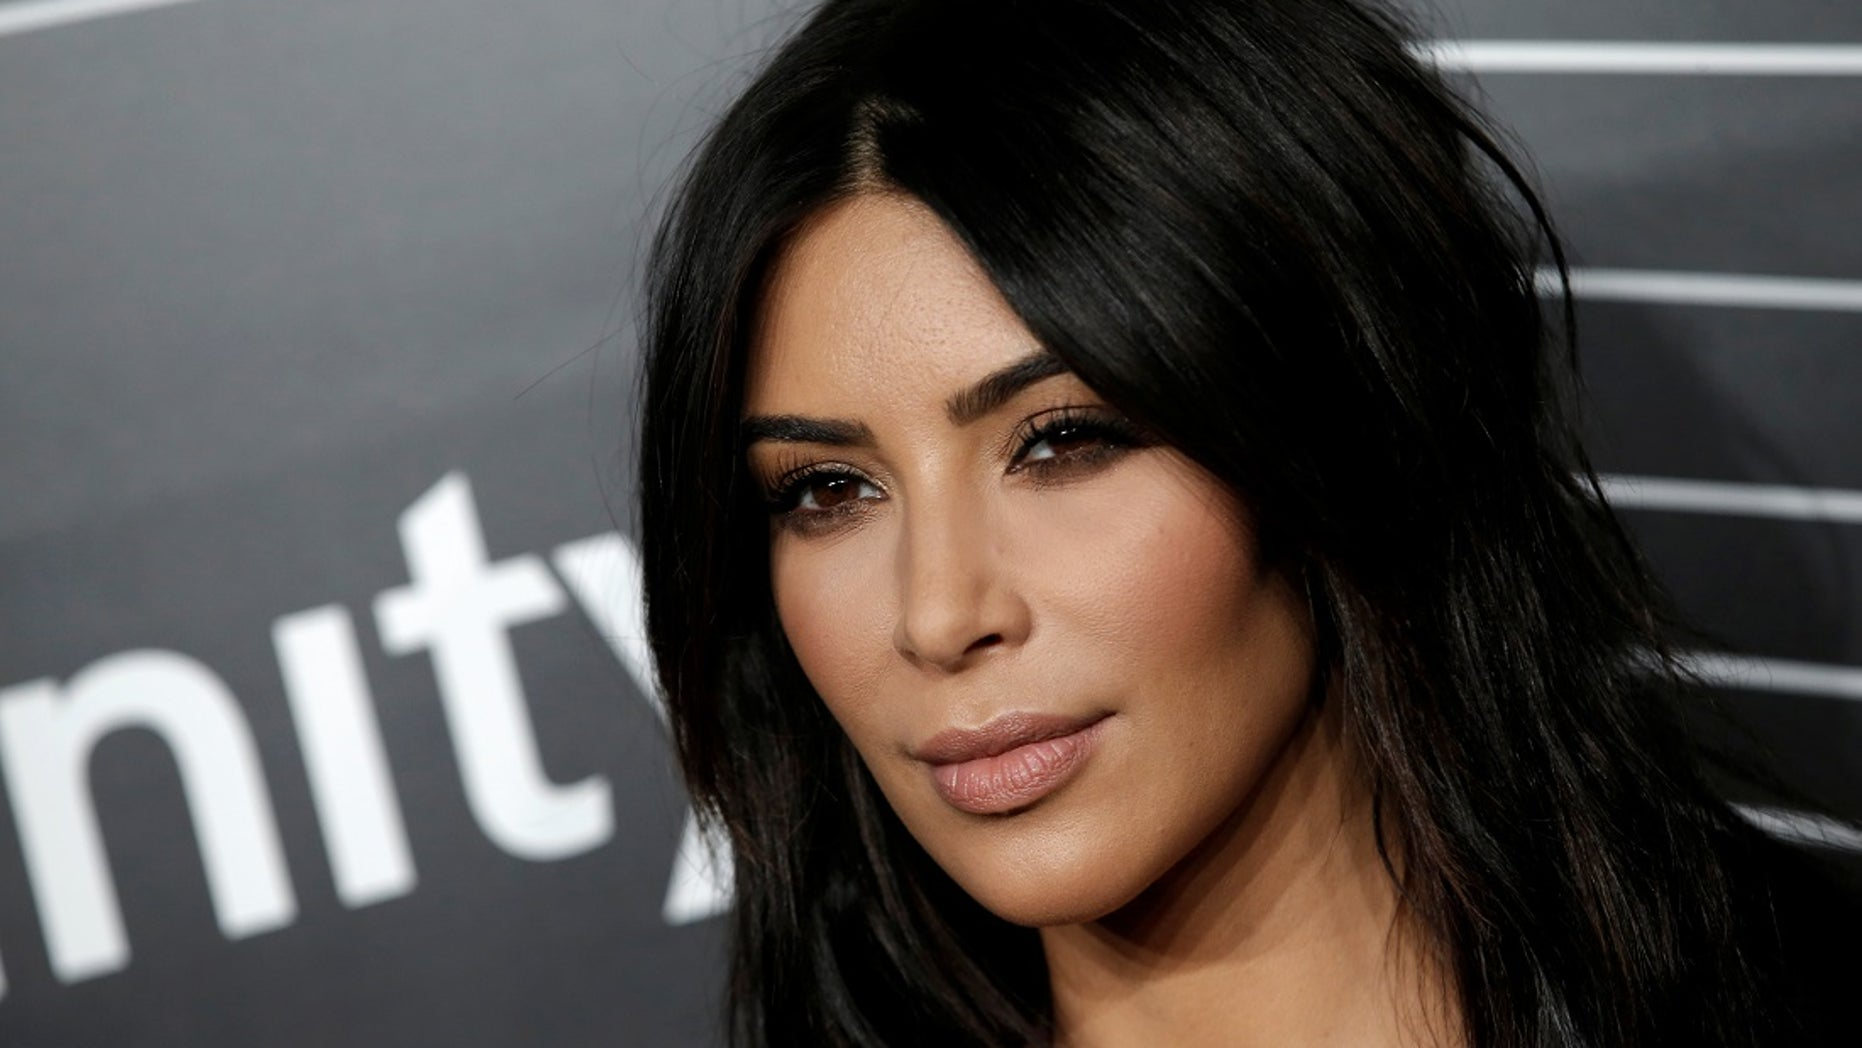 Kim Kardashian held nothing back when talking about President Trump in a new interview.